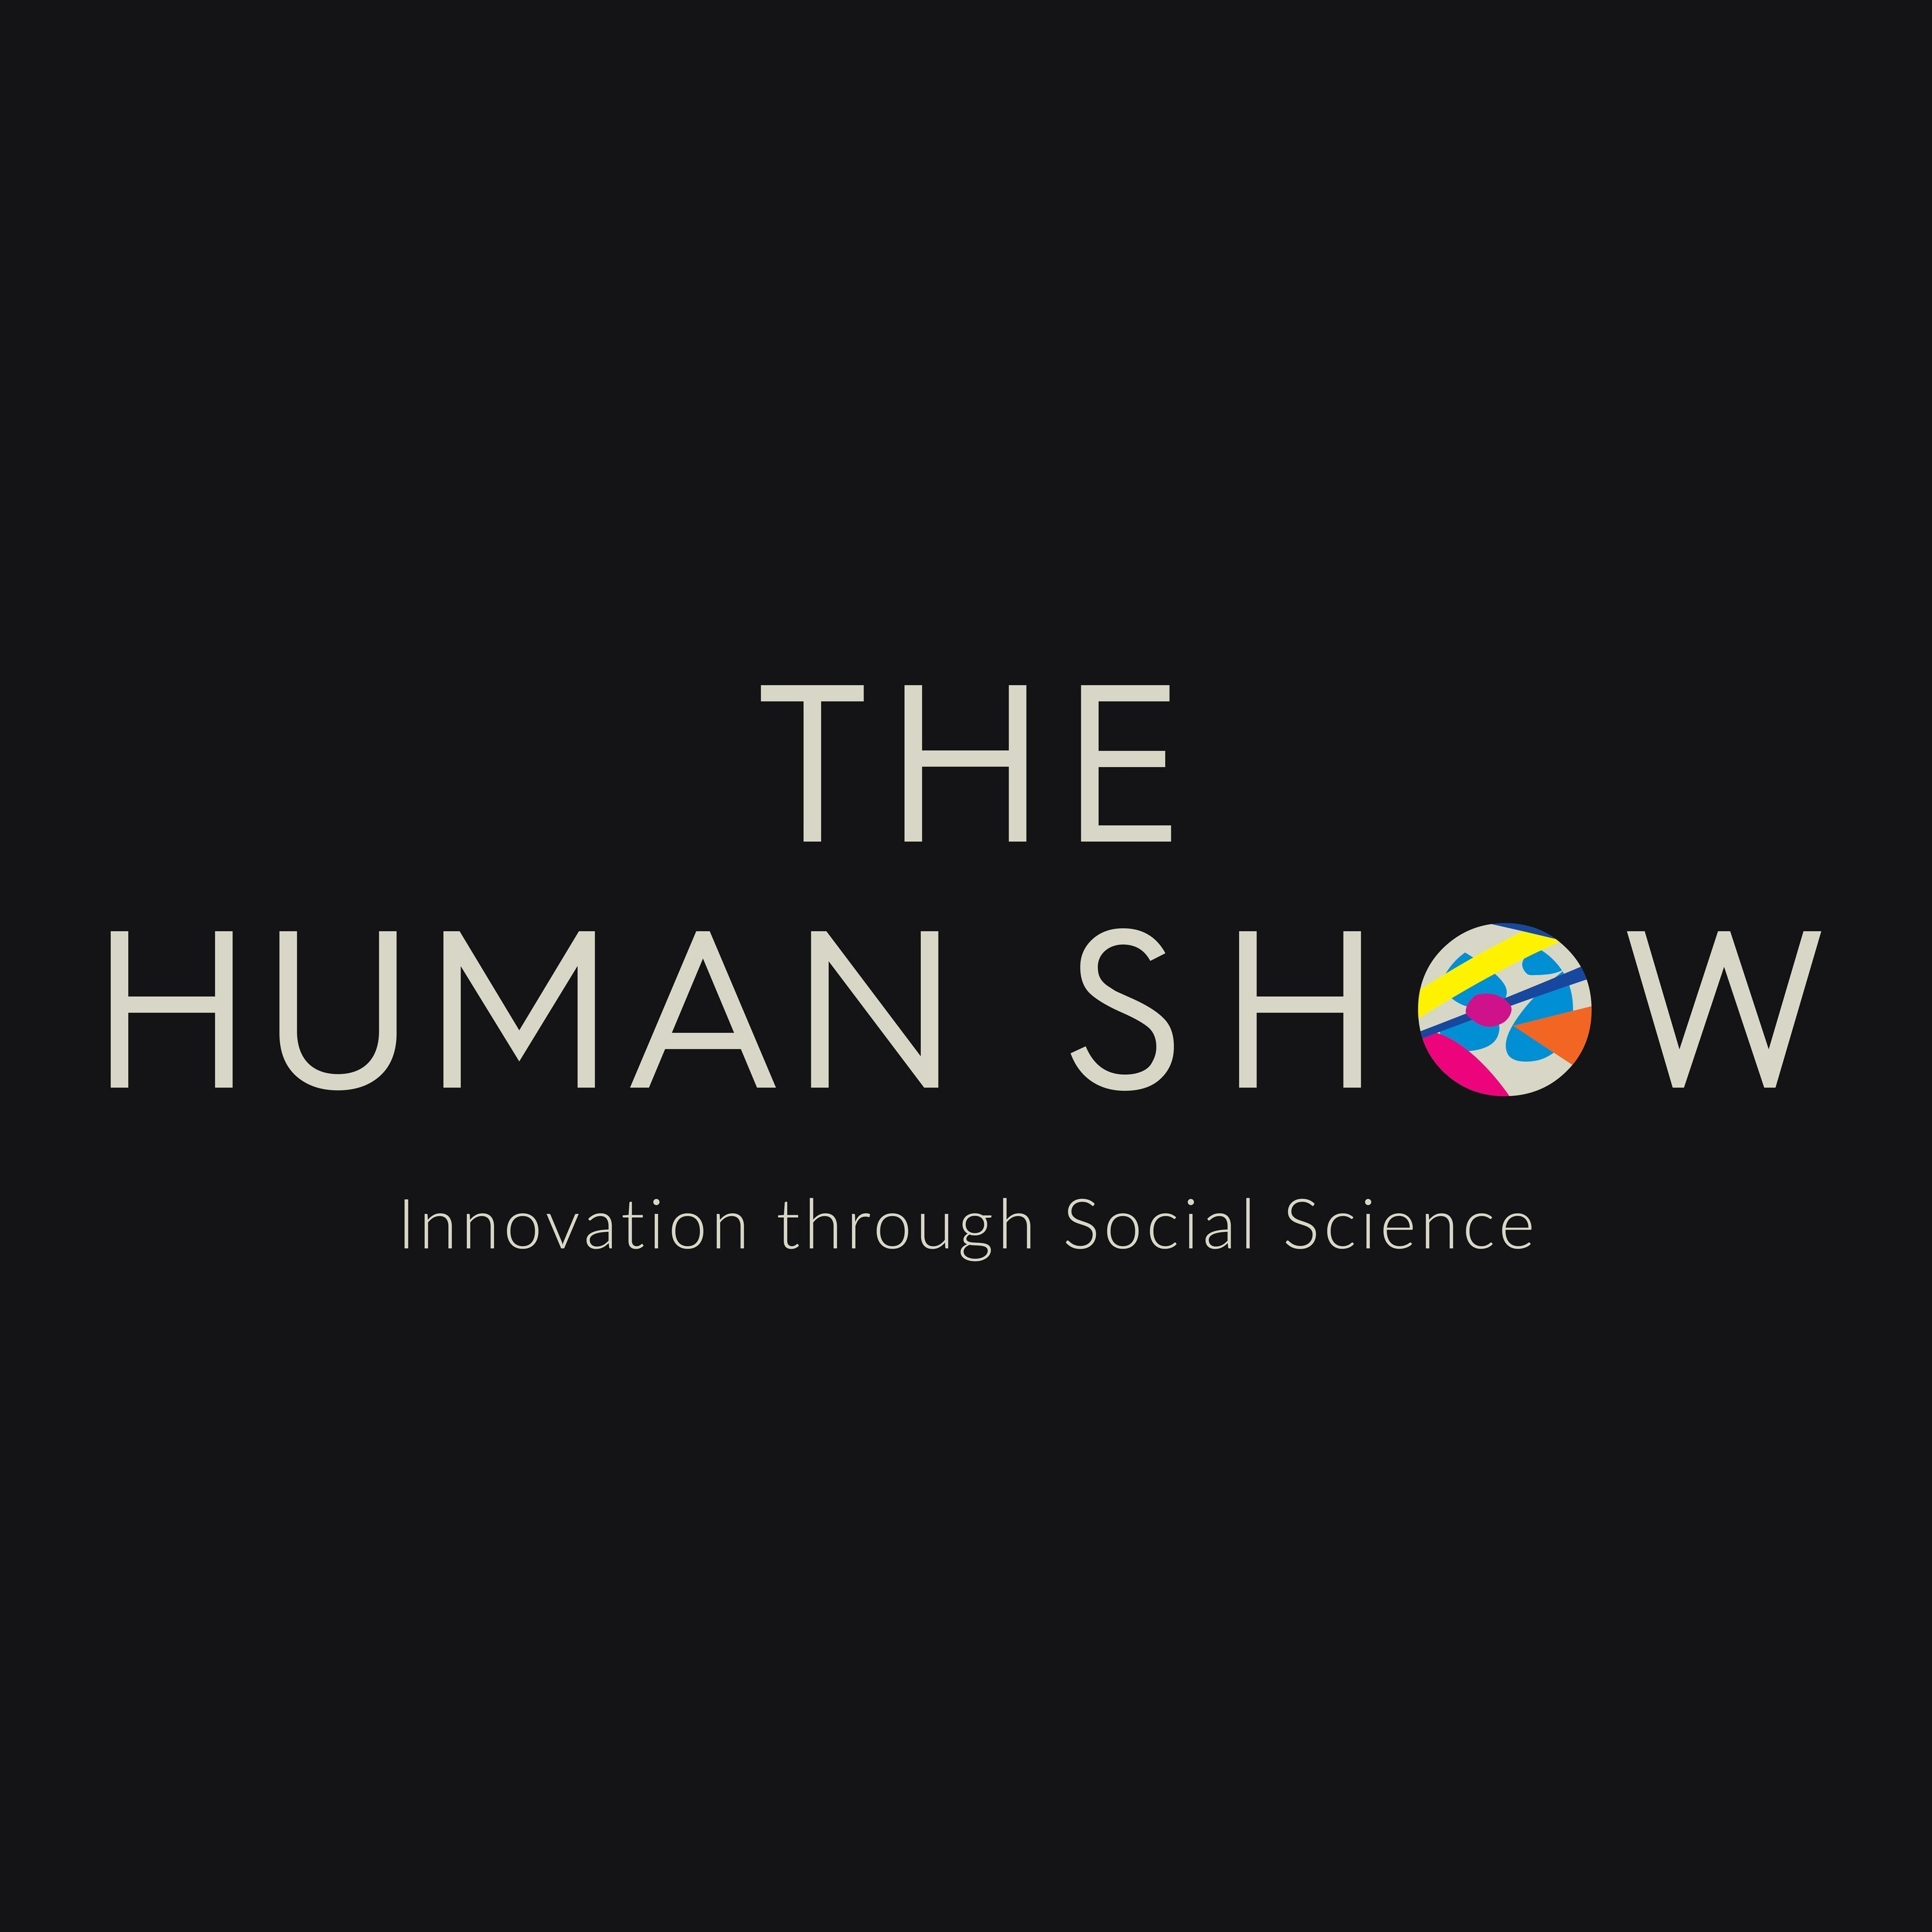 The Human Show: Innovation through Social Science